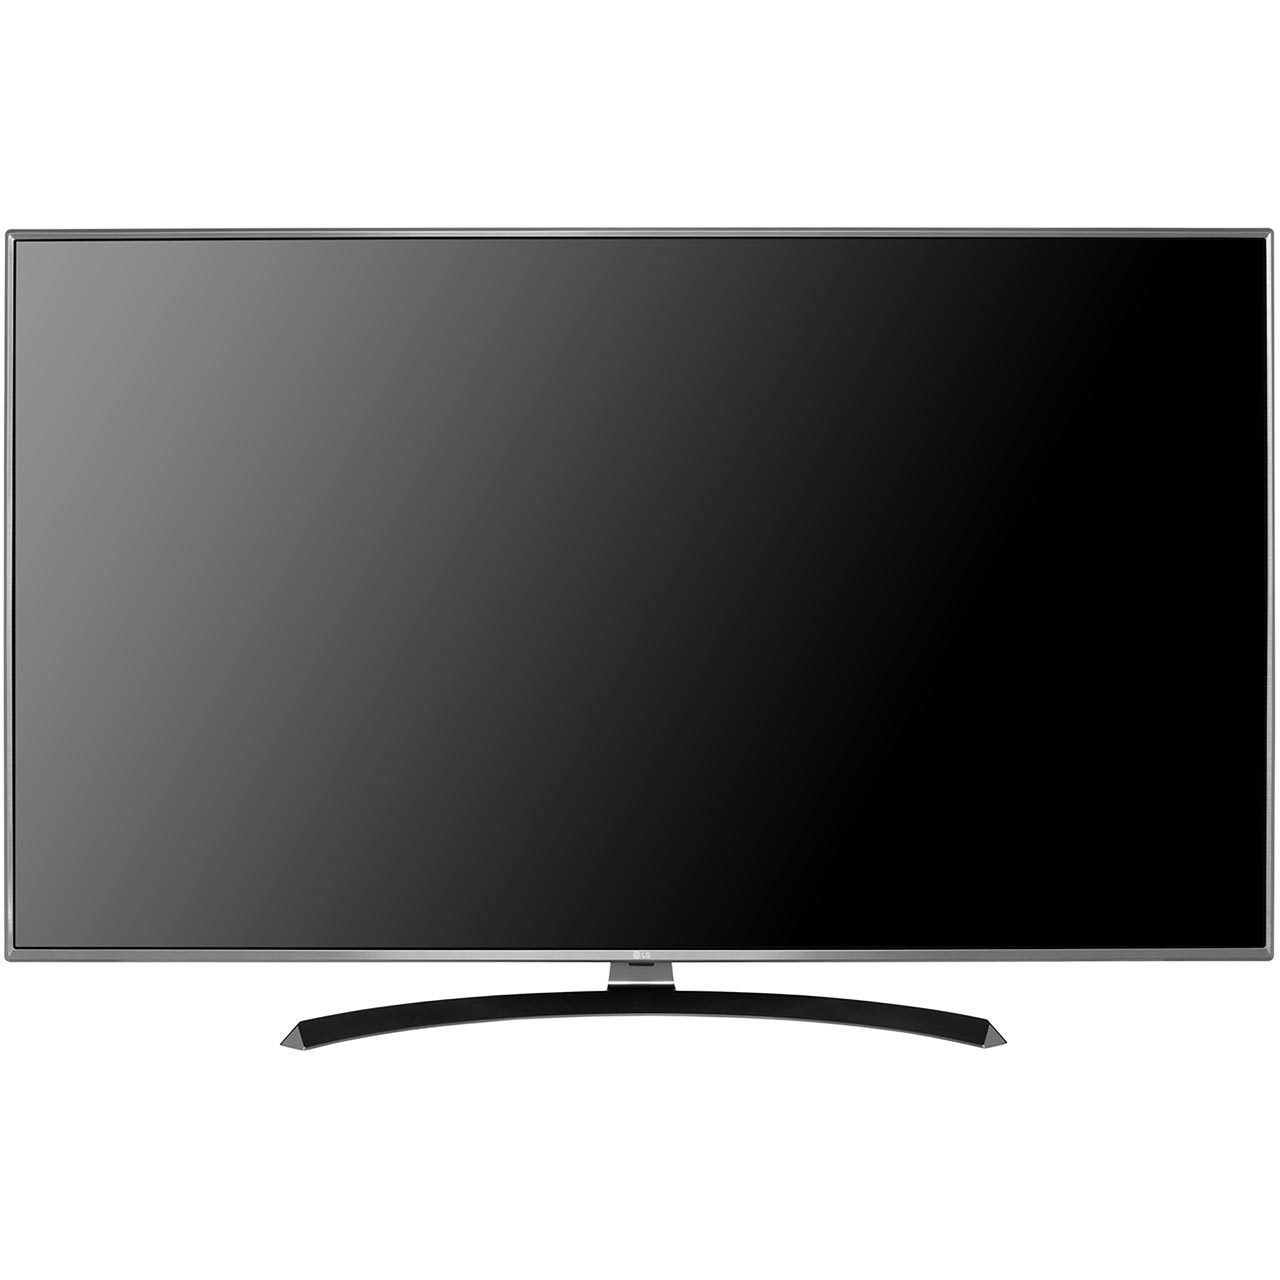 lg 65 inch 4k tv manual